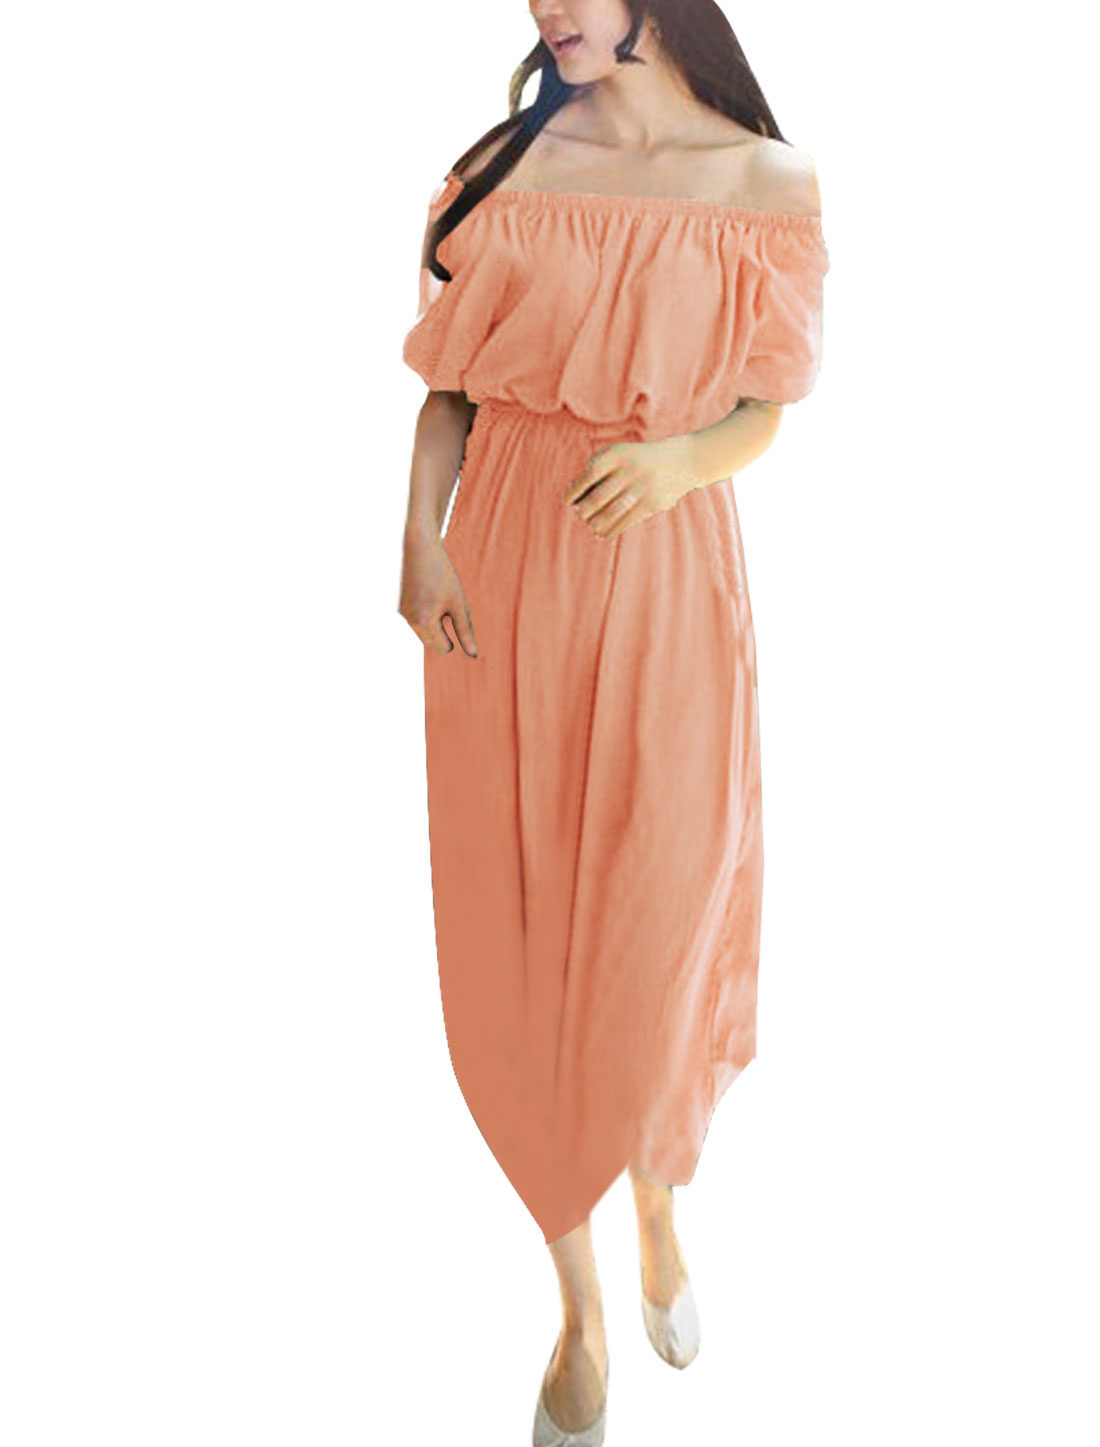 Women Chiffon Off Shoulder Semi Sheer Short Sleeve Dress Salmon Pink XS